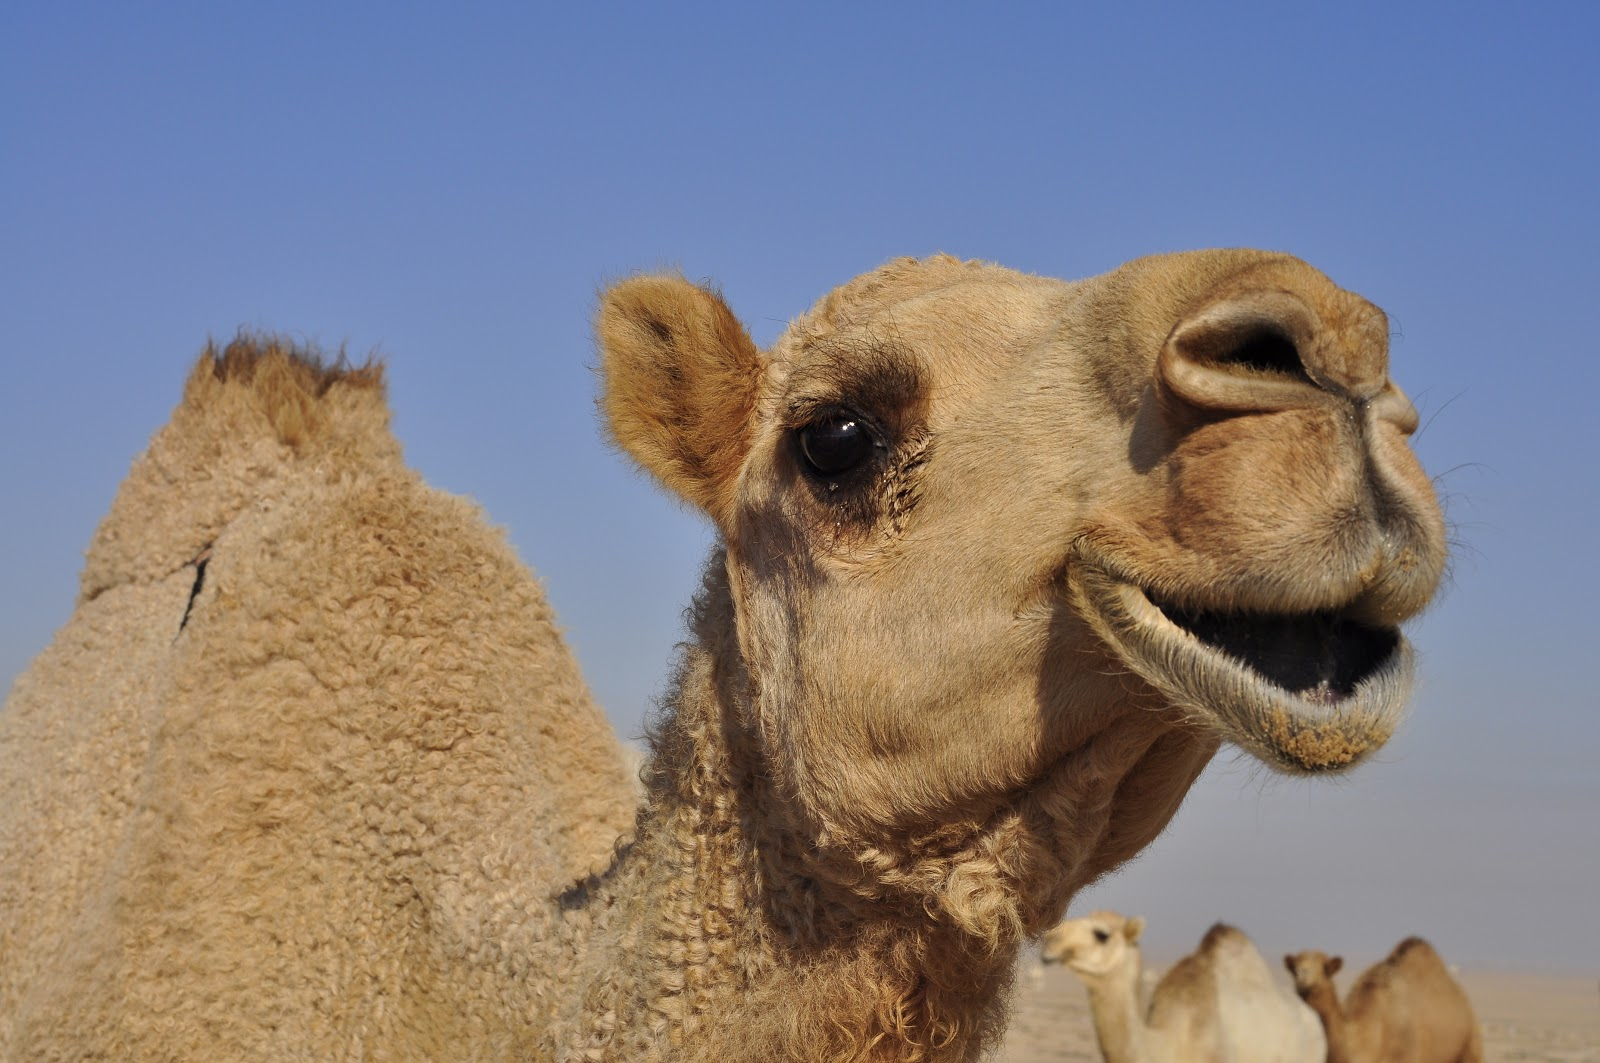 camels with funny faces quotes quotesgram